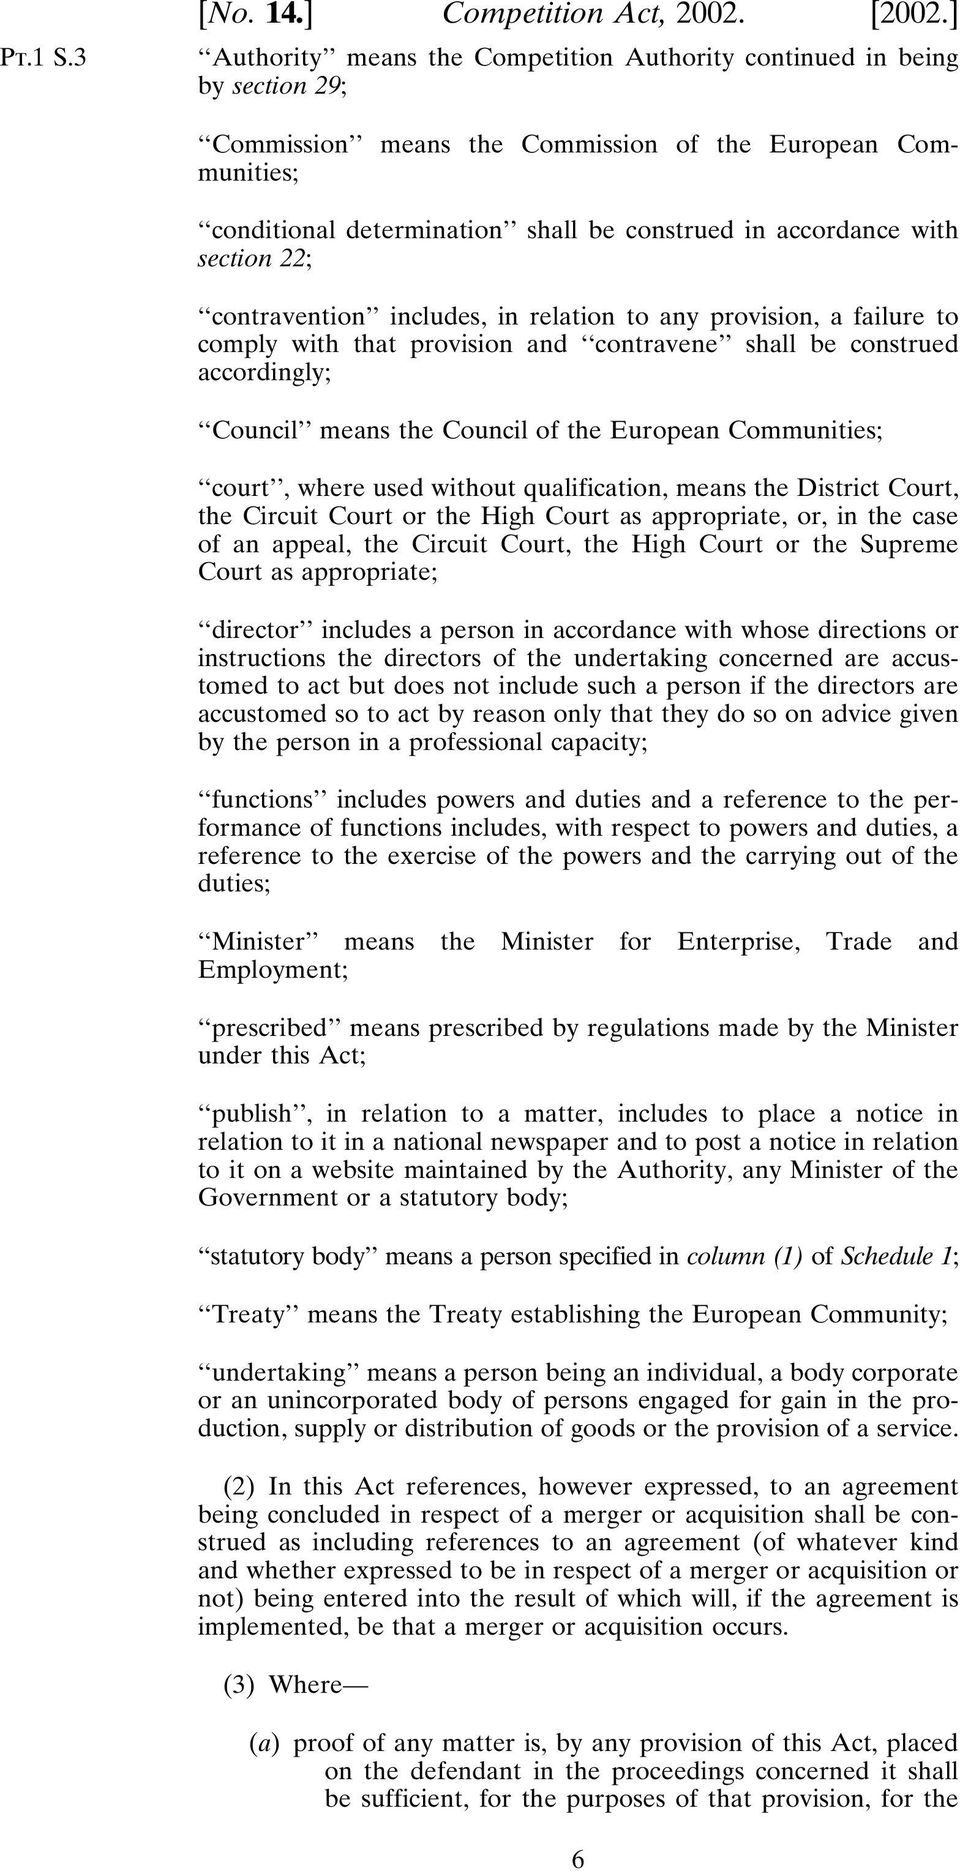 with section 22; contravention includes, in relation to any provision, a failure to comply with that provision and contravene shall be construed accordingly; Council means the Council of the European